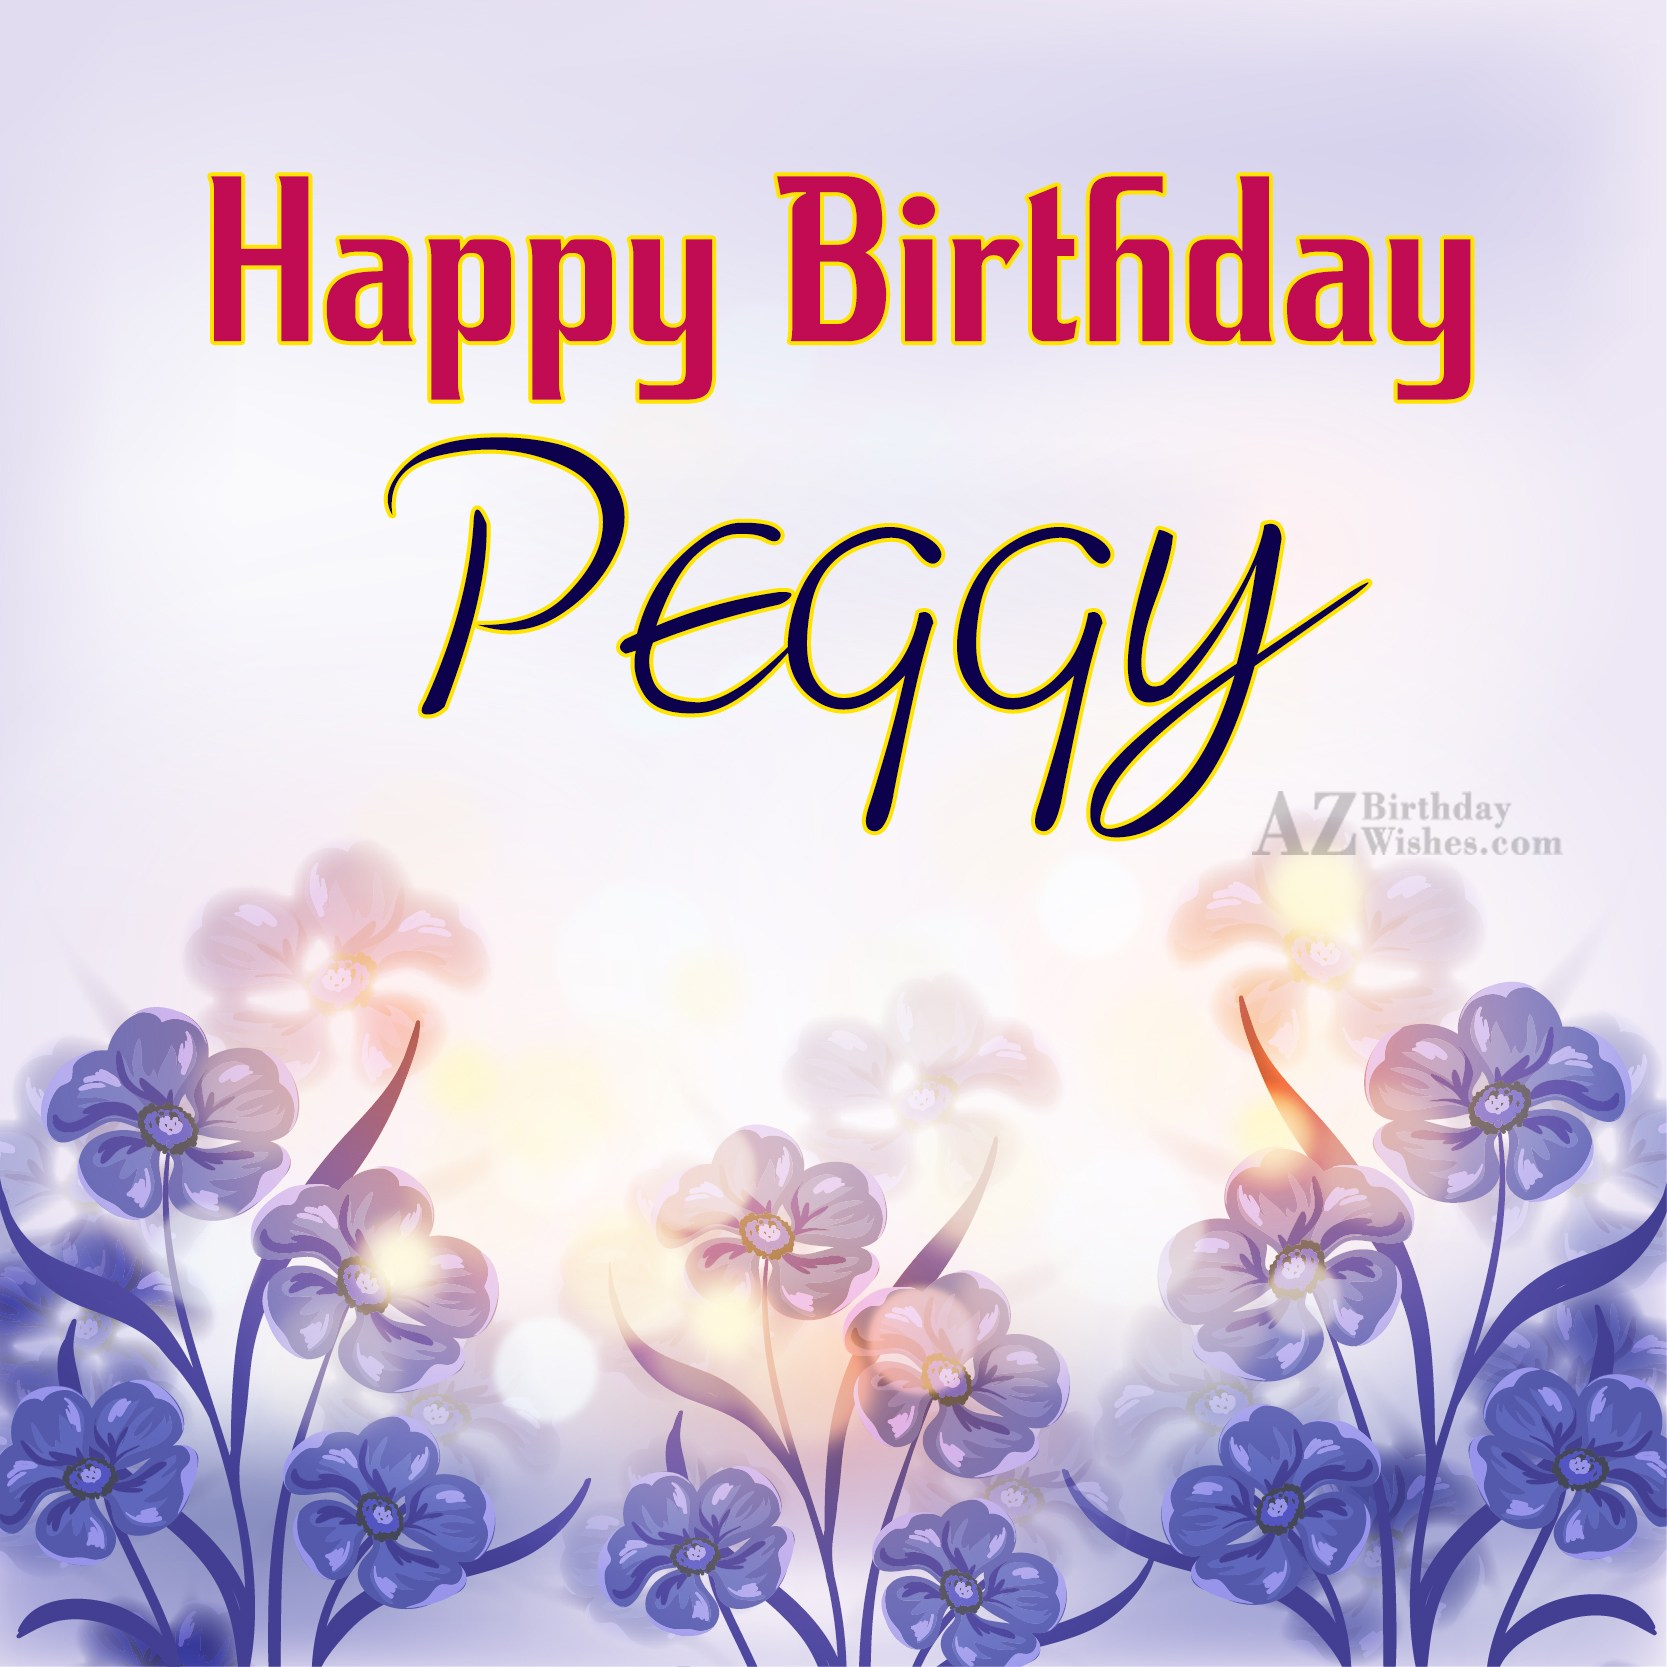 happy birthday peggy